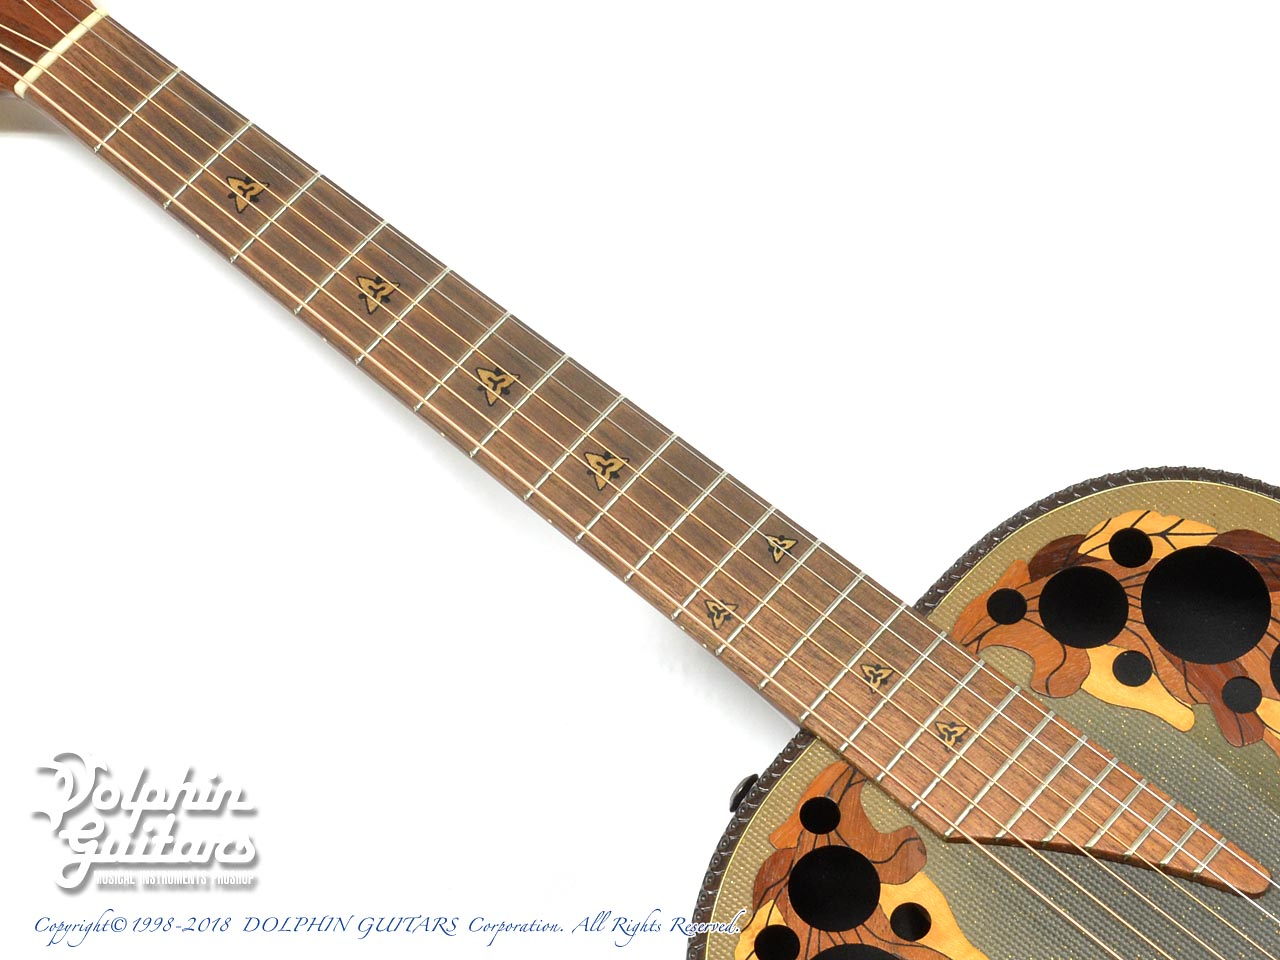 OVATION: Super Adamas 1687-9 (4)